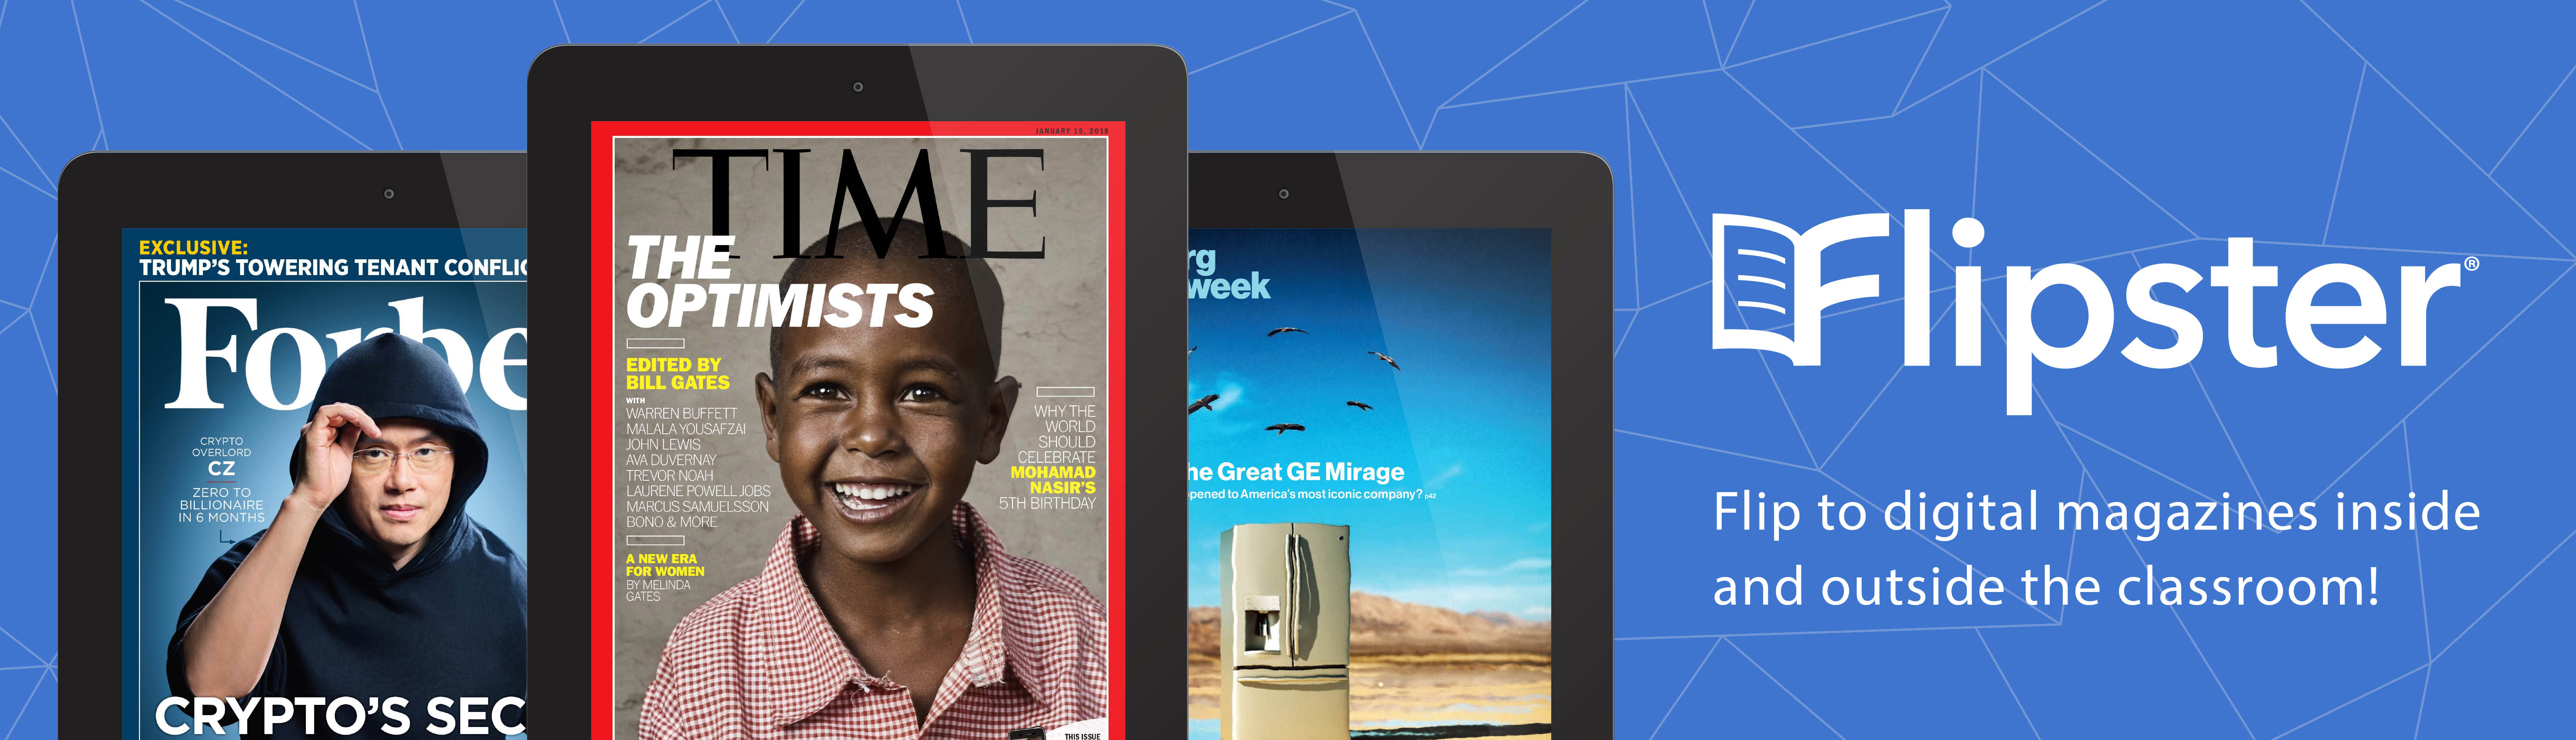 Flip to digital magazines inside and outside the classroom!